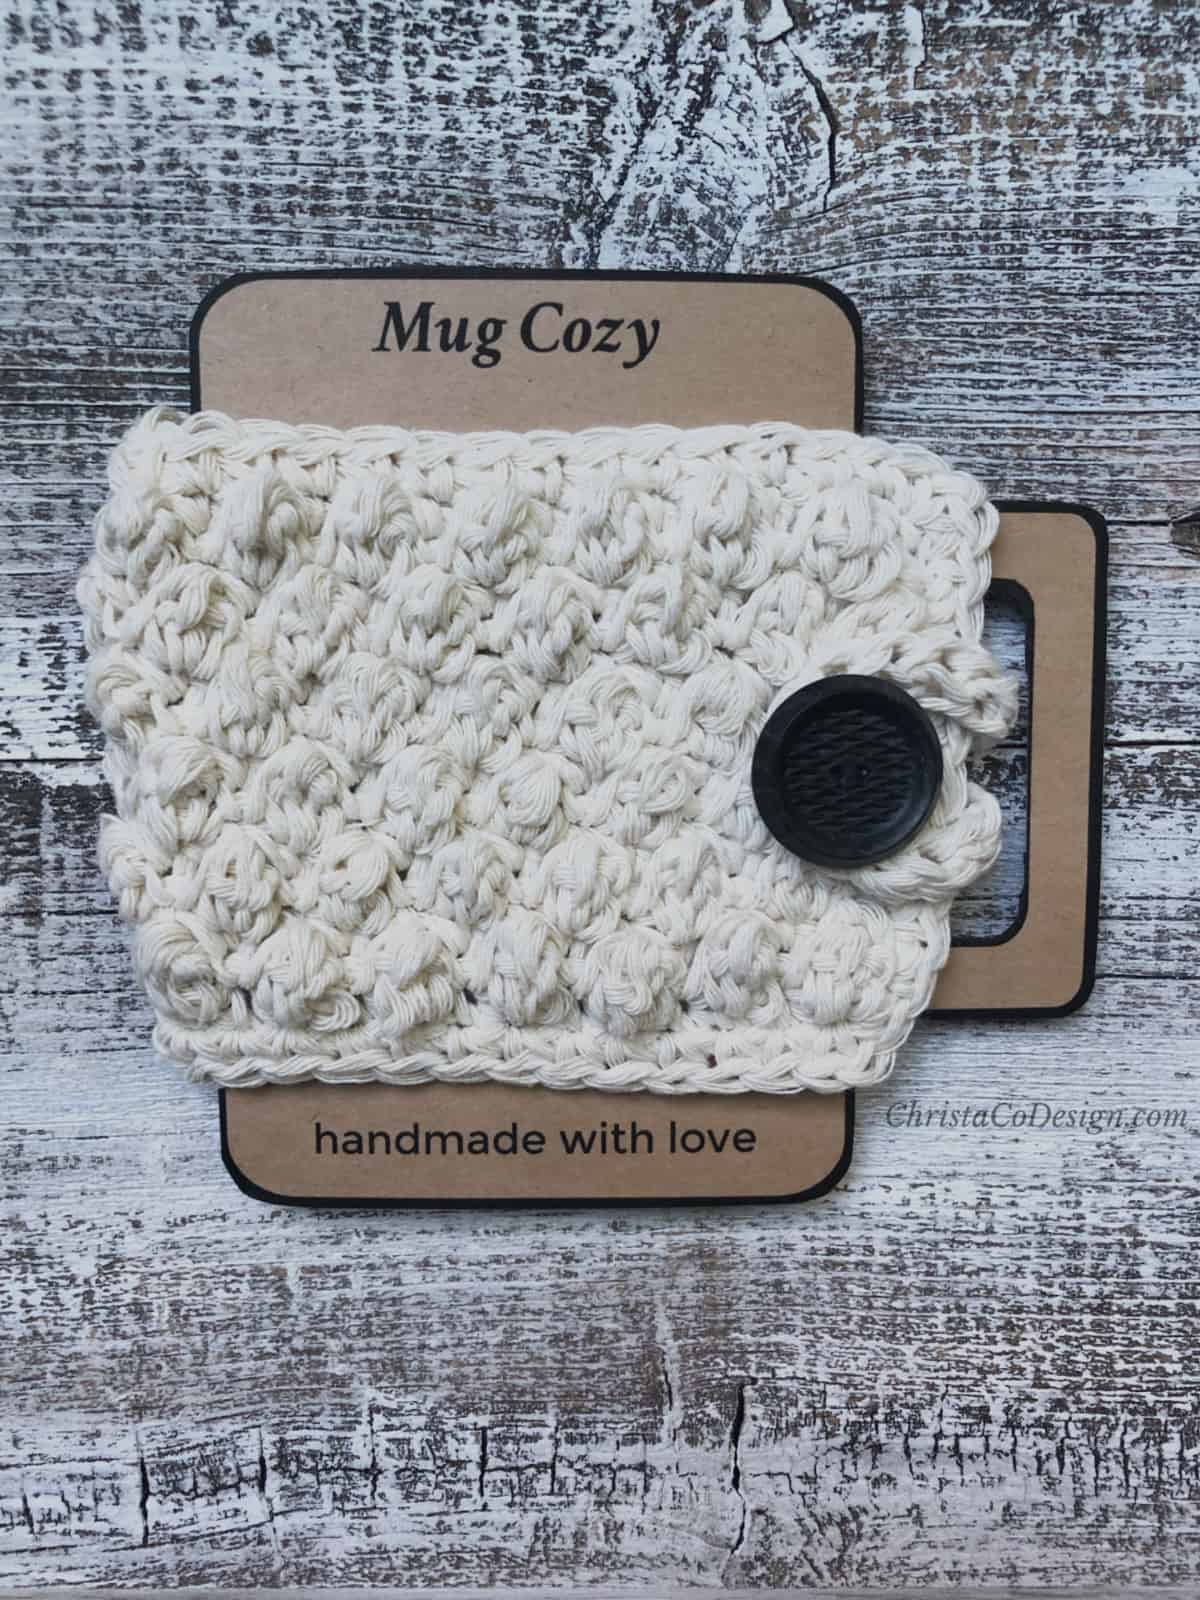 picture of crochet mug cozy on cardboard printable